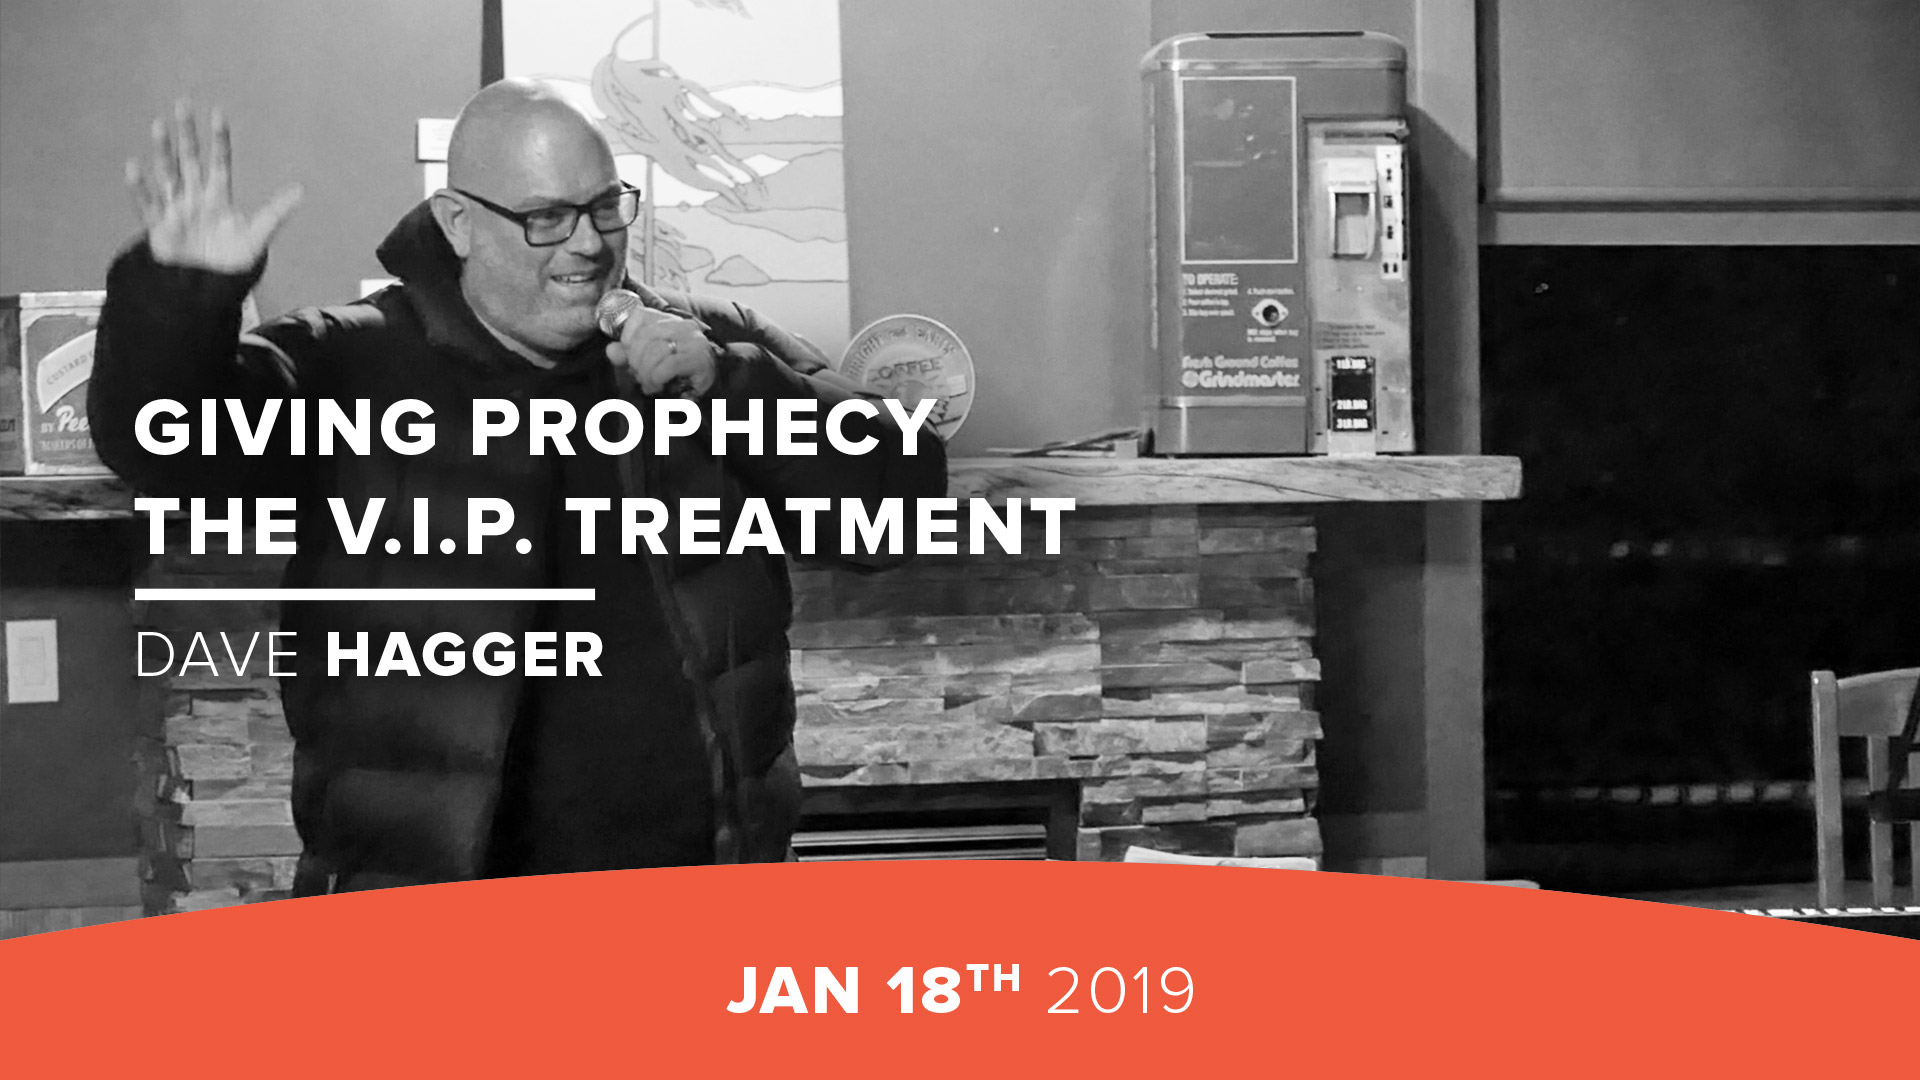 Giving Prophecy the V.I.P. Treatment